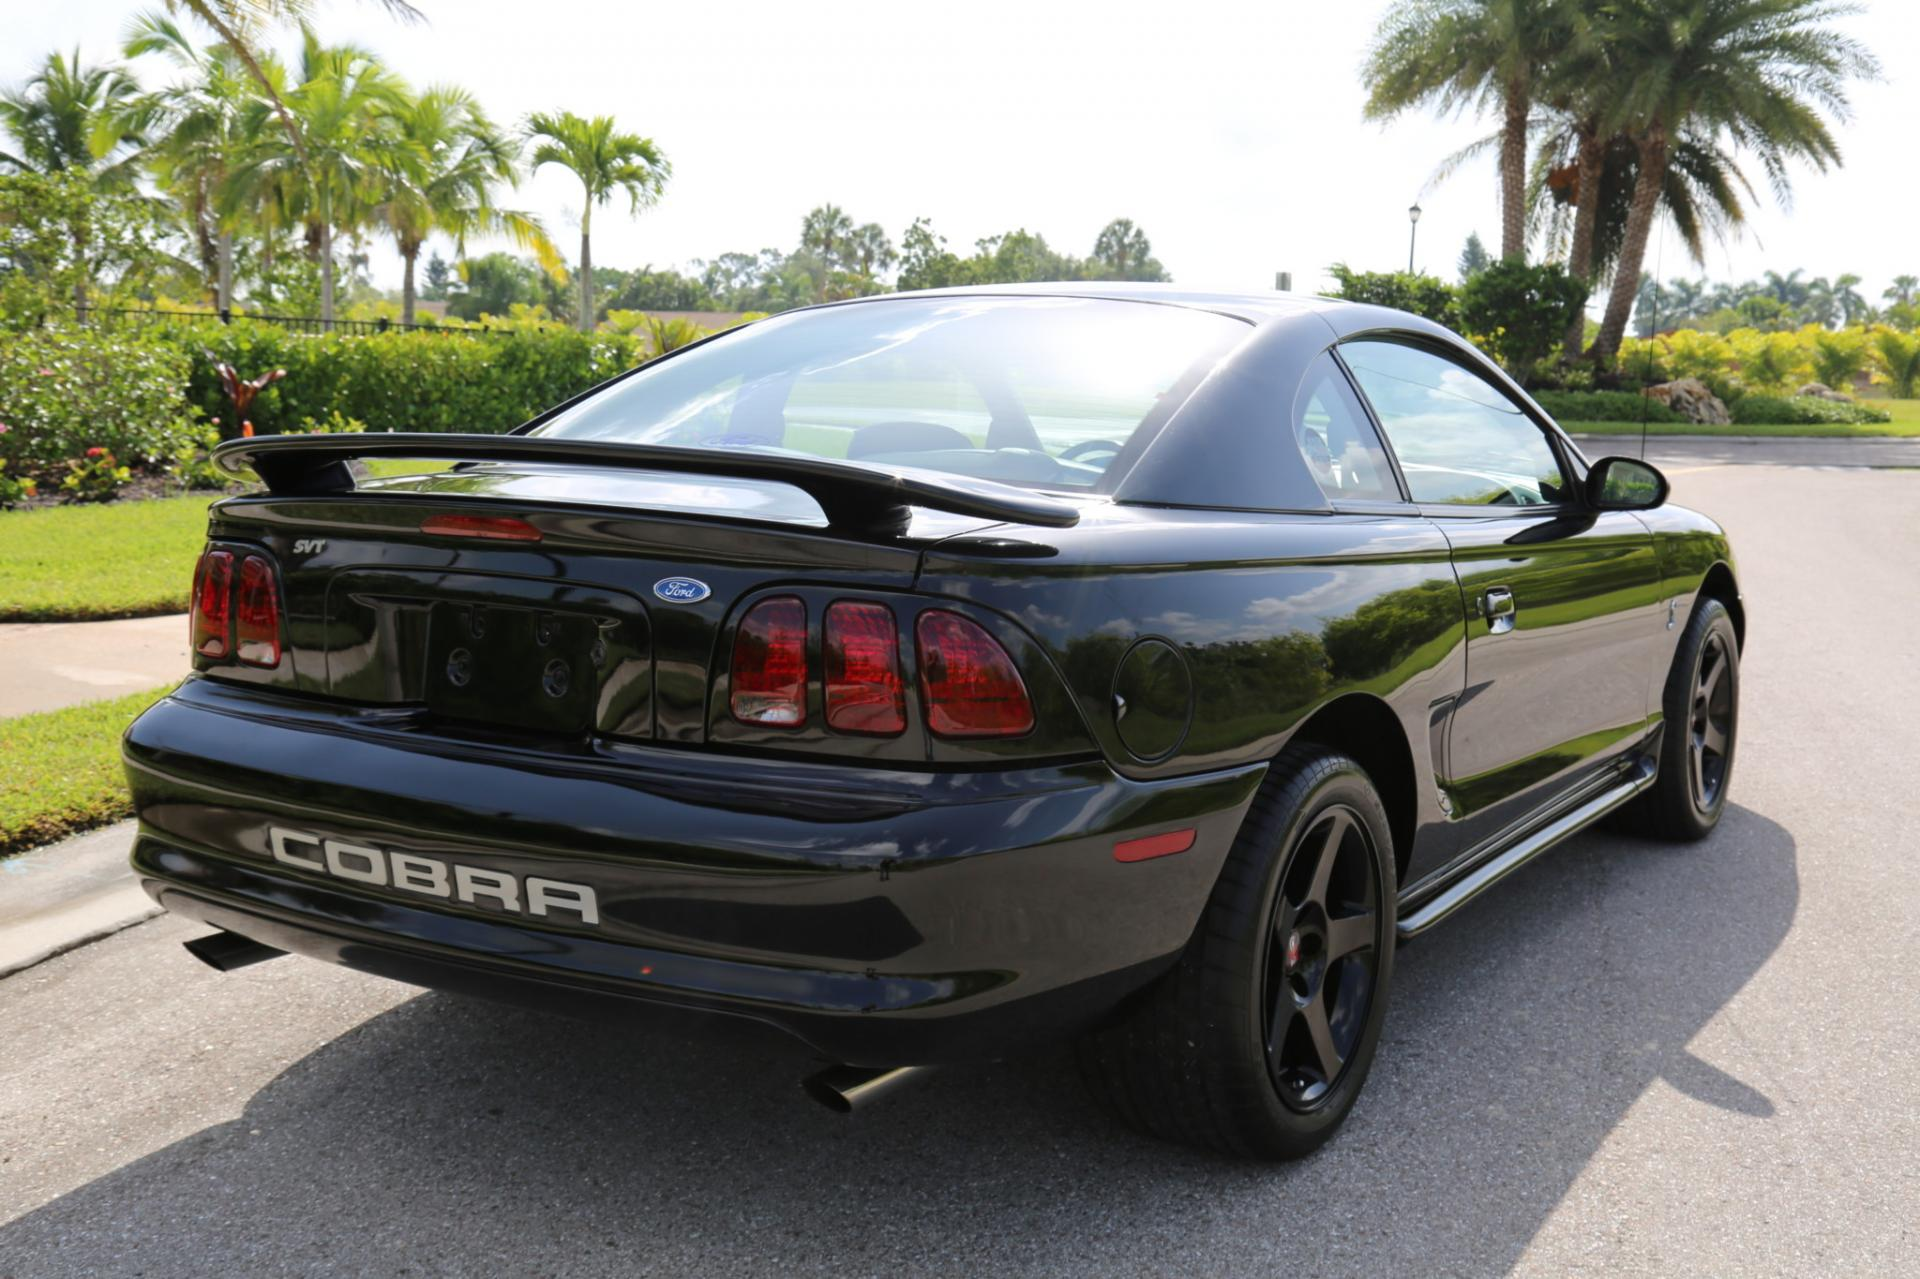 Used 1996 Mustang Cobra SVT for sale $22,500 at Muscle Cars for Sale Inc. in Fort Myers FL 33912 5